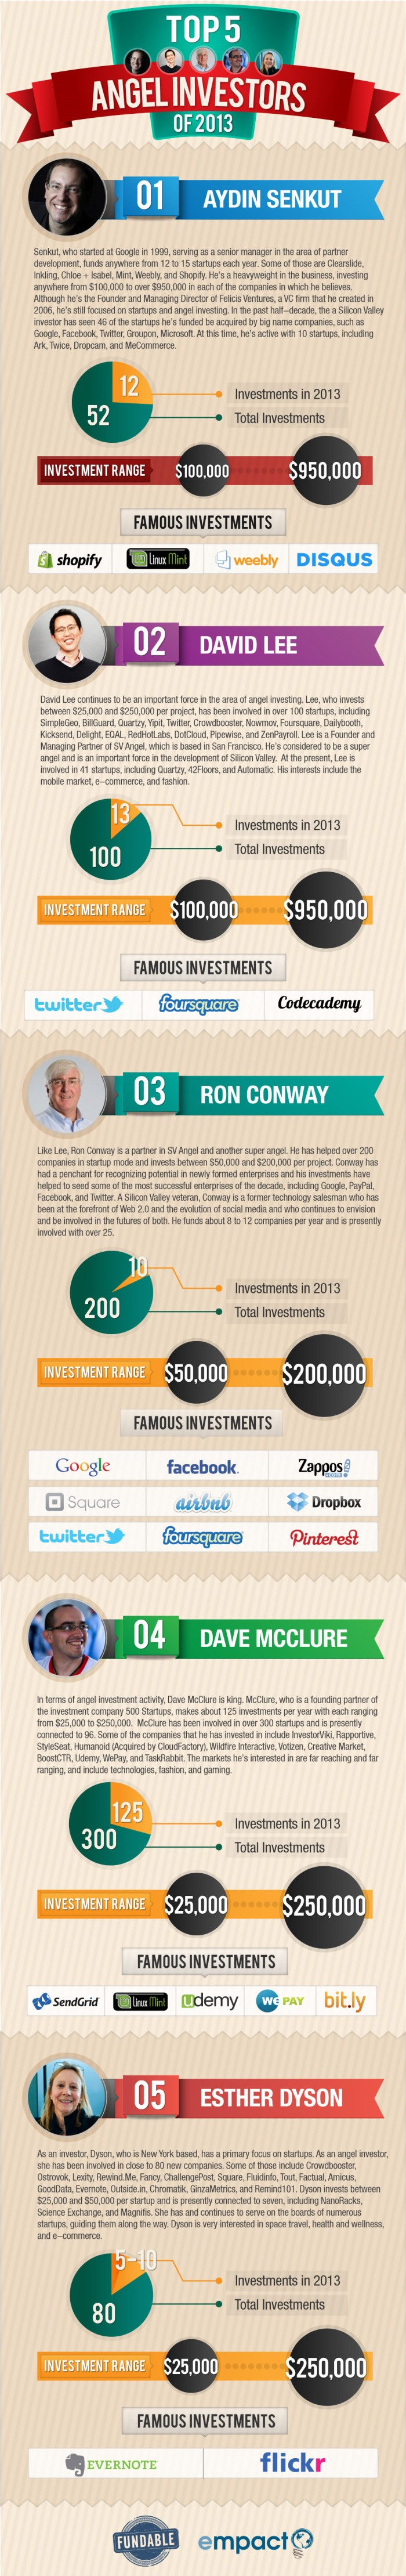 The Biggest Angel Investors of Year 2013